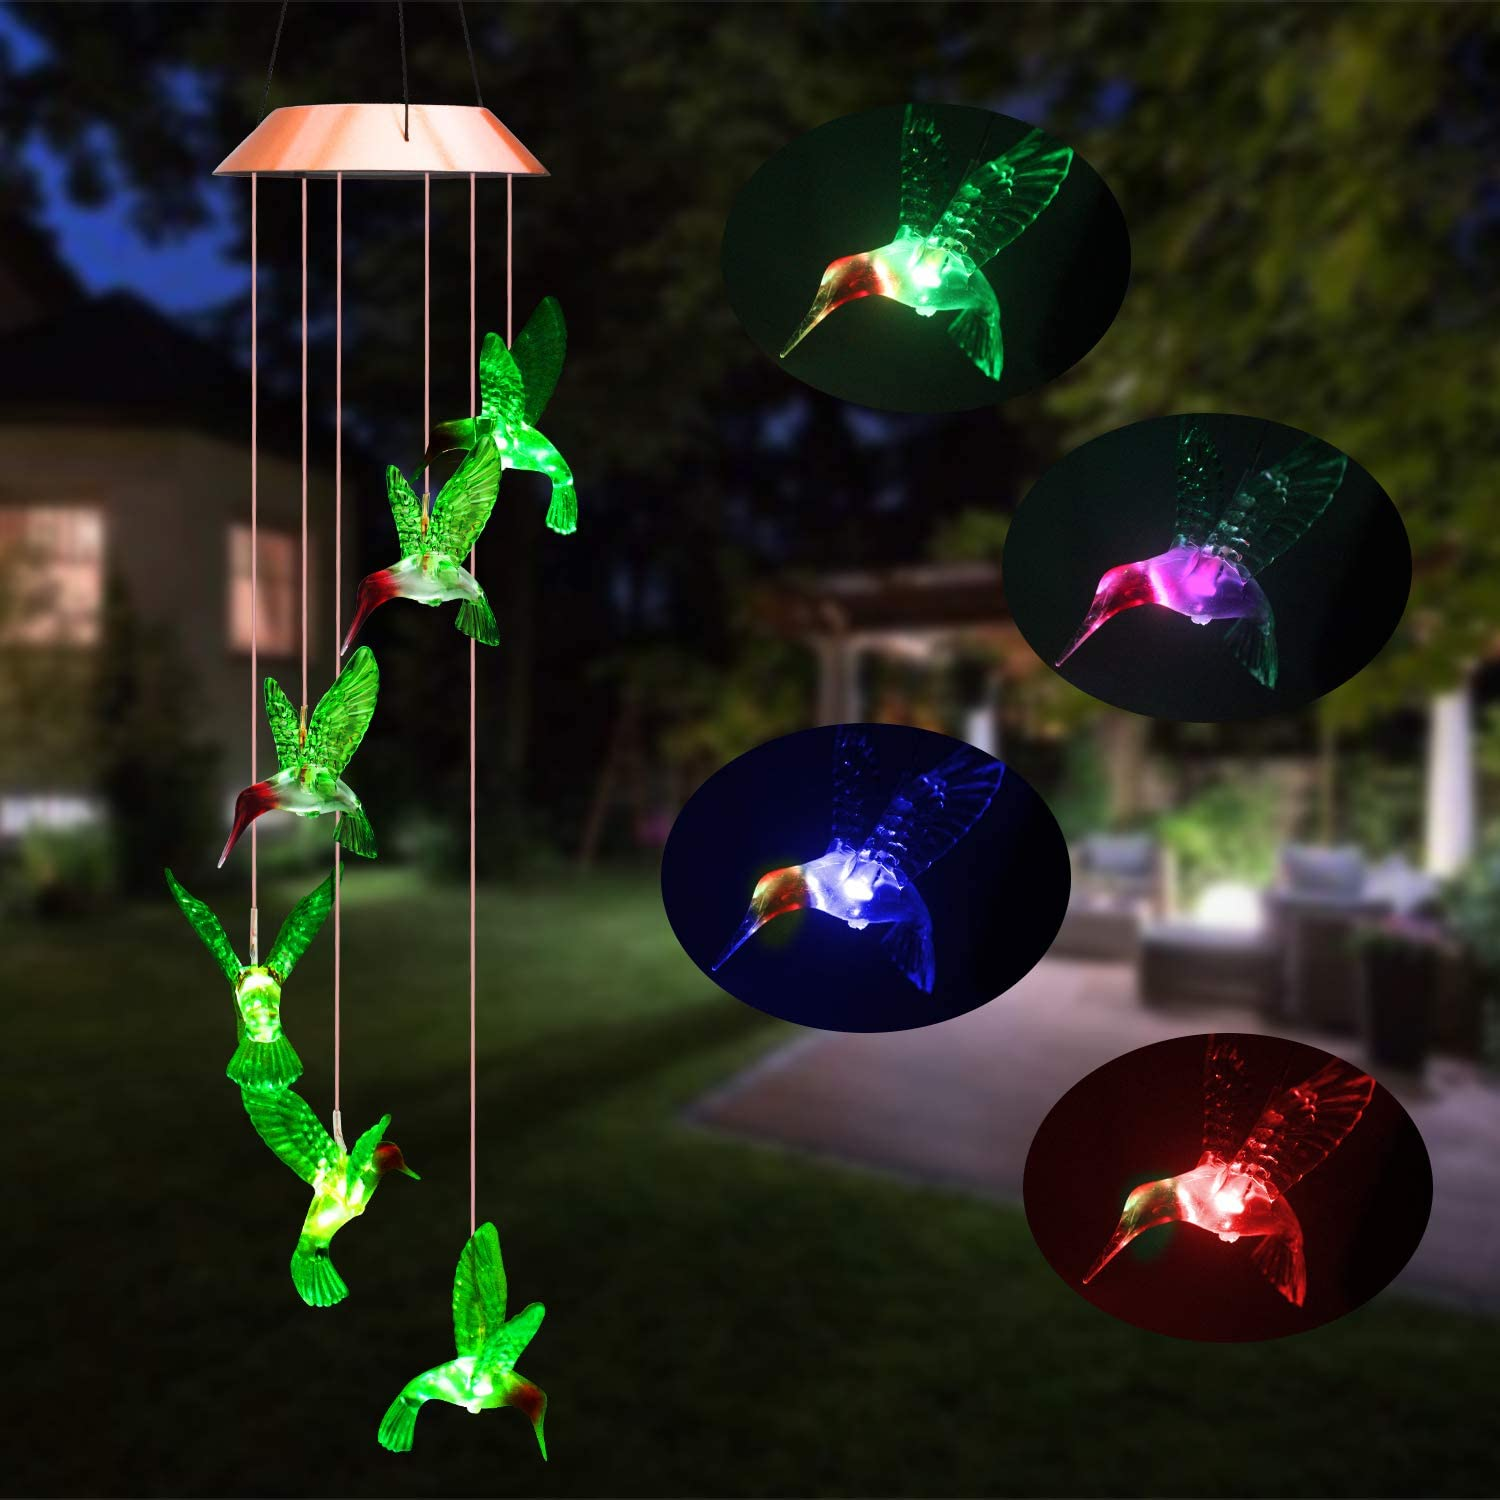 Beinhome Solar Hummingbird Wind Chimes, Outdoor Waterproof Mobile Romantic LED Color-Changing Sensor Powered Wind Chimes Lights for Home, Yard, Night Garden, Party, Valentines Gift, Festival Decor